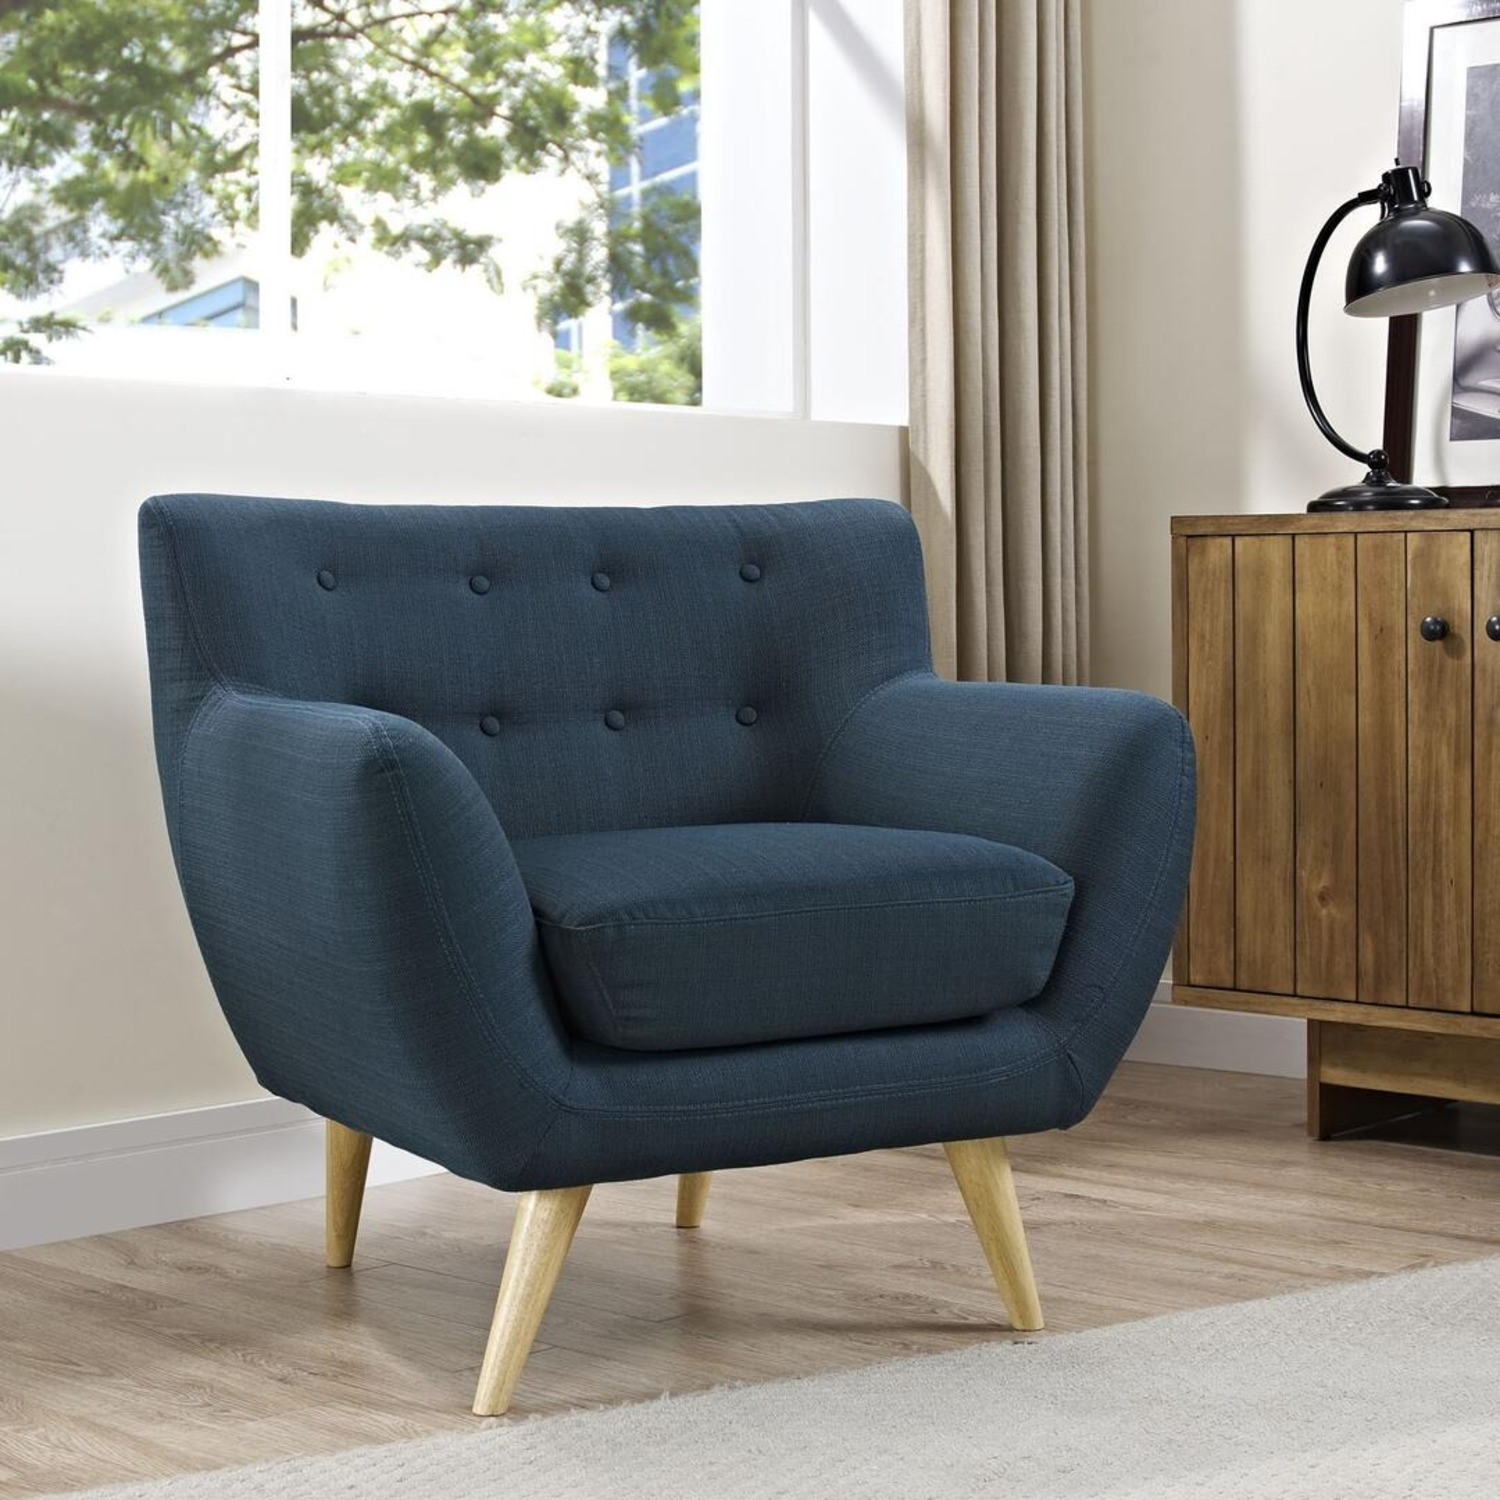 Armchair In Azure Upholstery W/ Natural Wood Legs - image-4